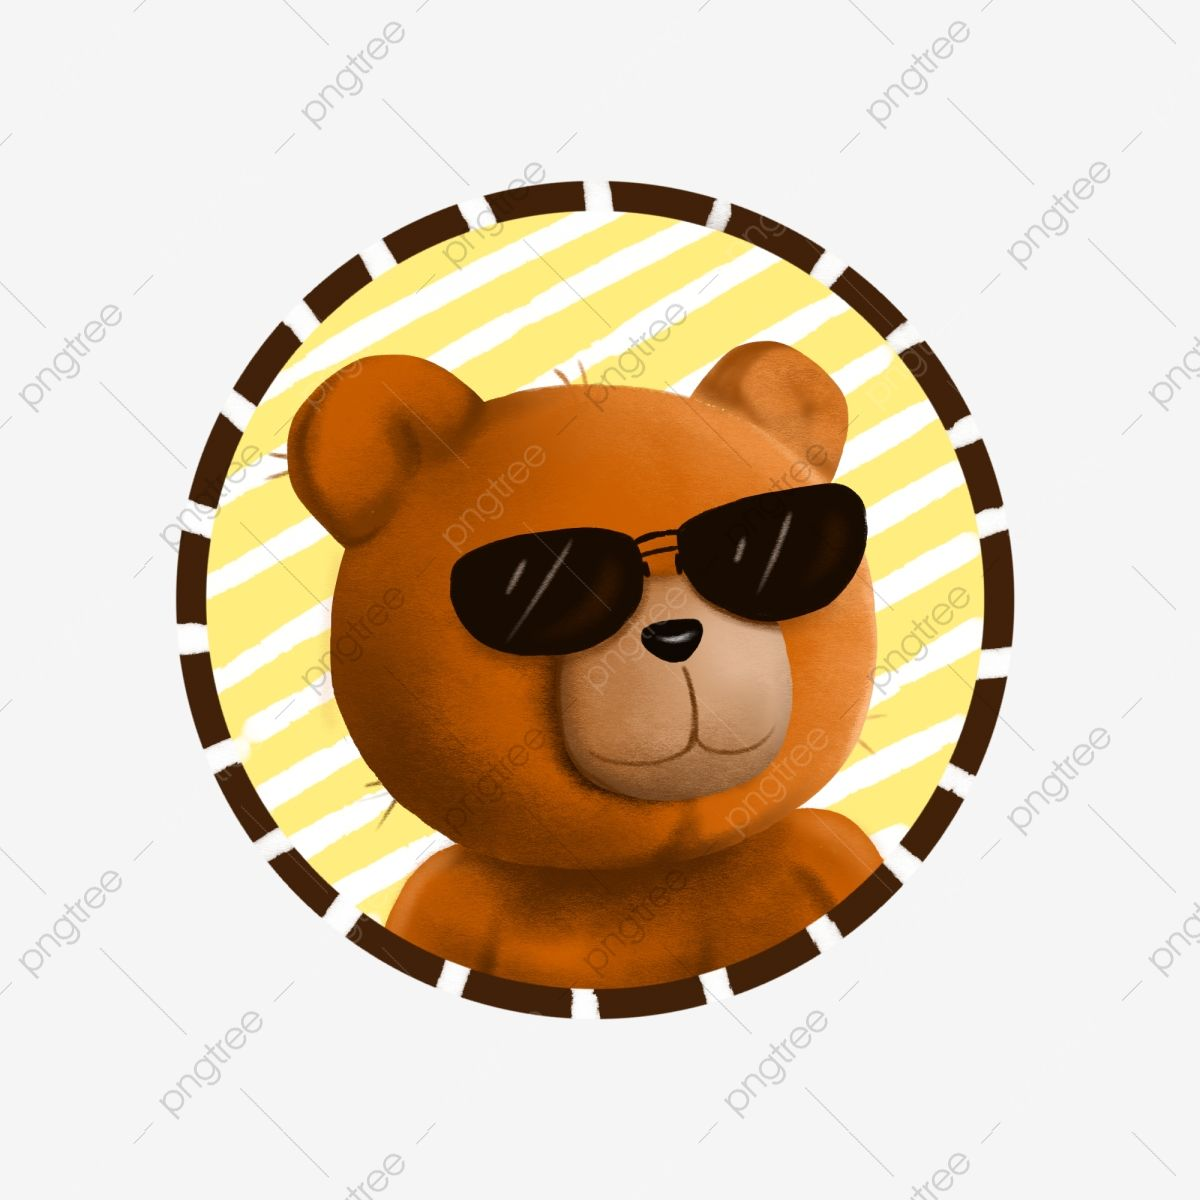 Bear Avatar Bear Head Portrait Cute Bear Cdr Png Transparent Clipart Image And Psd File For Free Download Cute Bears Iphone Homescreen Wallpaper Cute Banners